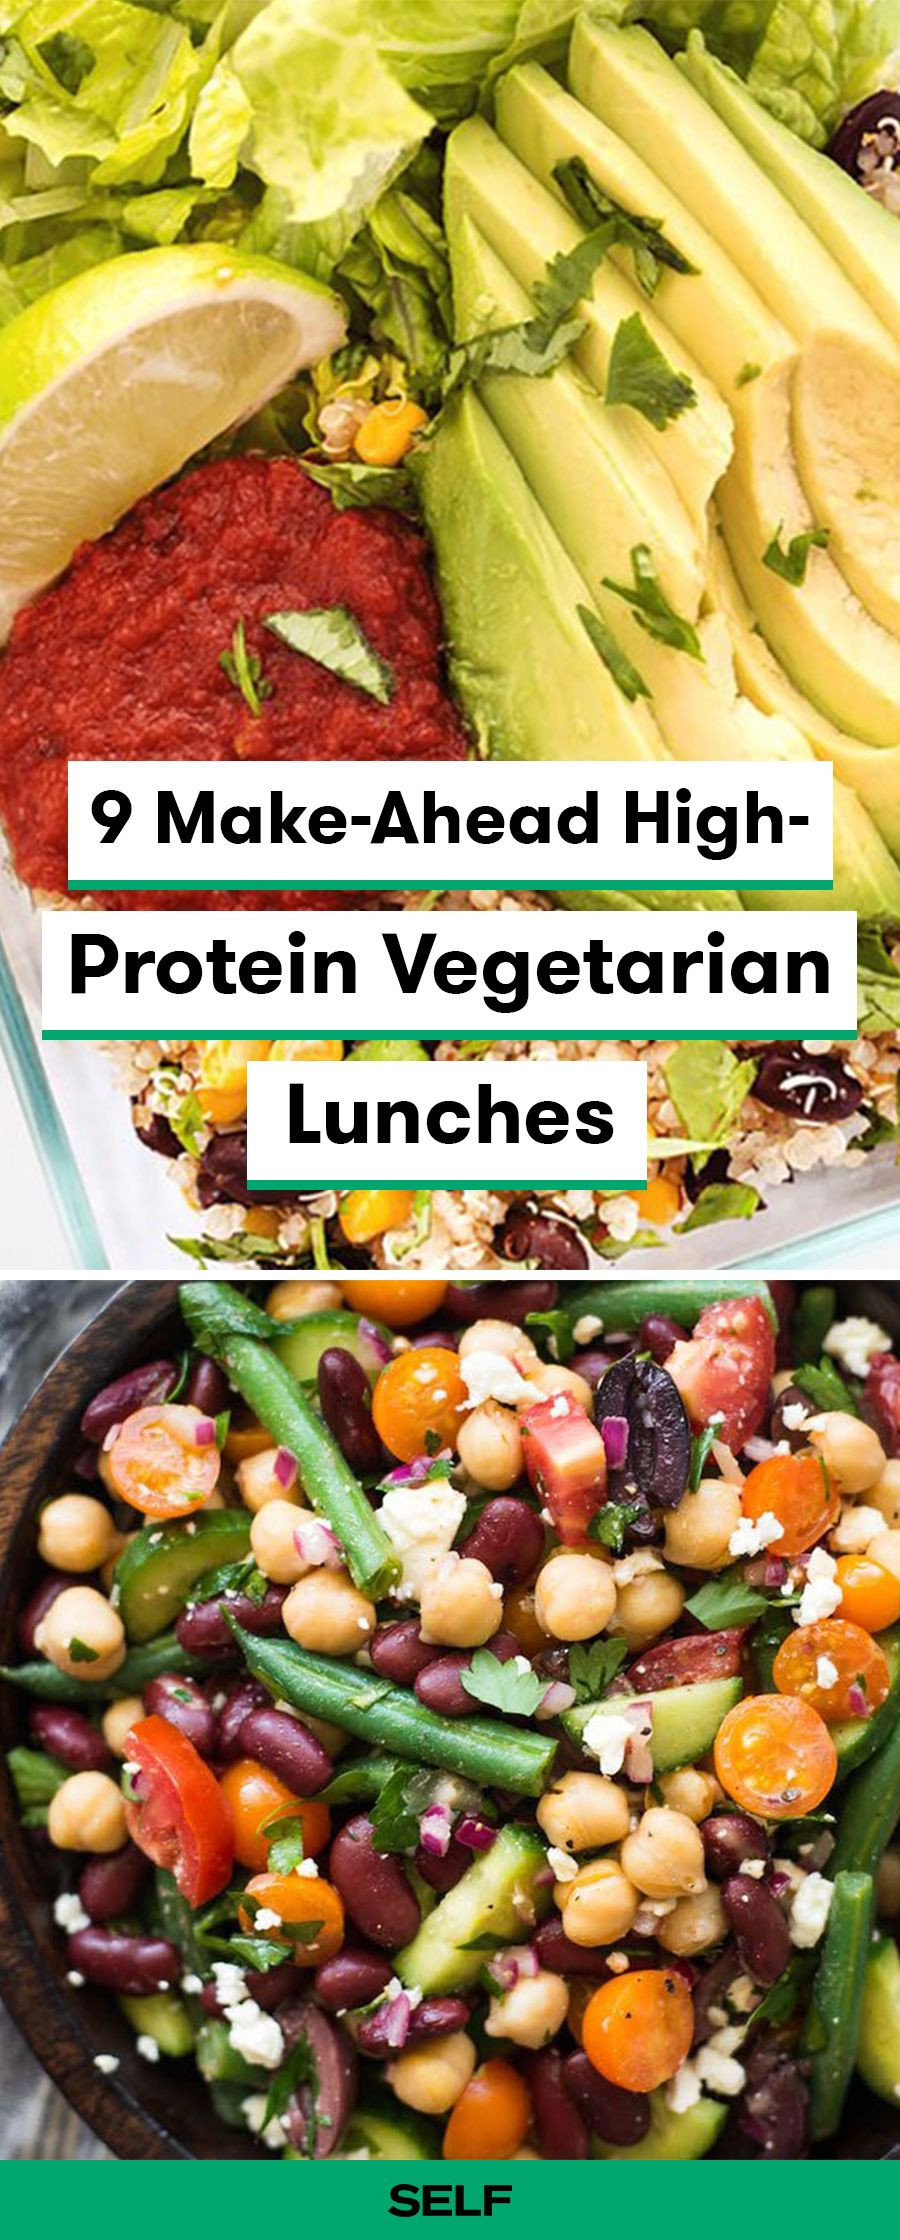 Vegan Protein Lunch Ideas  9 Make Ahead High Protein Ve arian Lunches